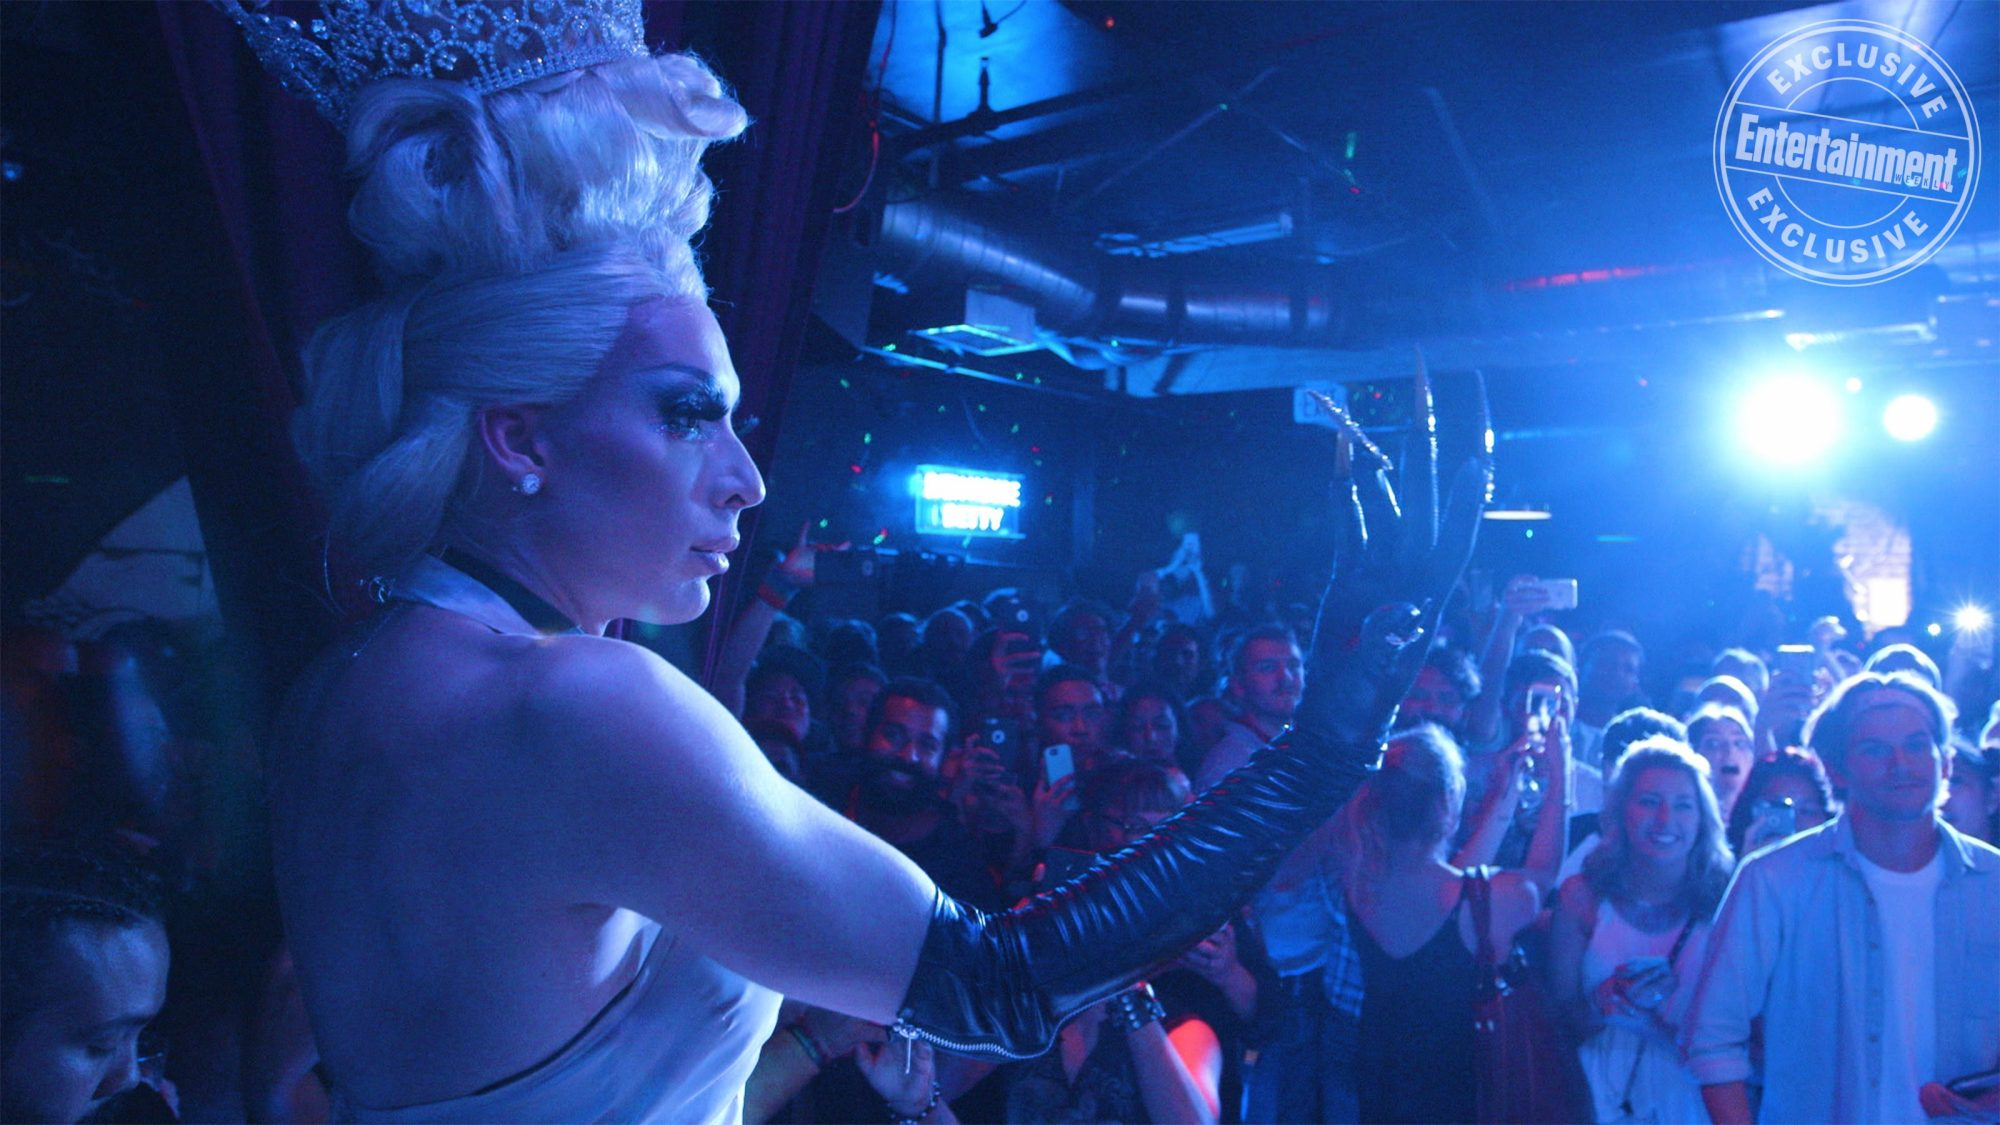 The Queens Courtesy of Producer Entertainment Group and OUTtv